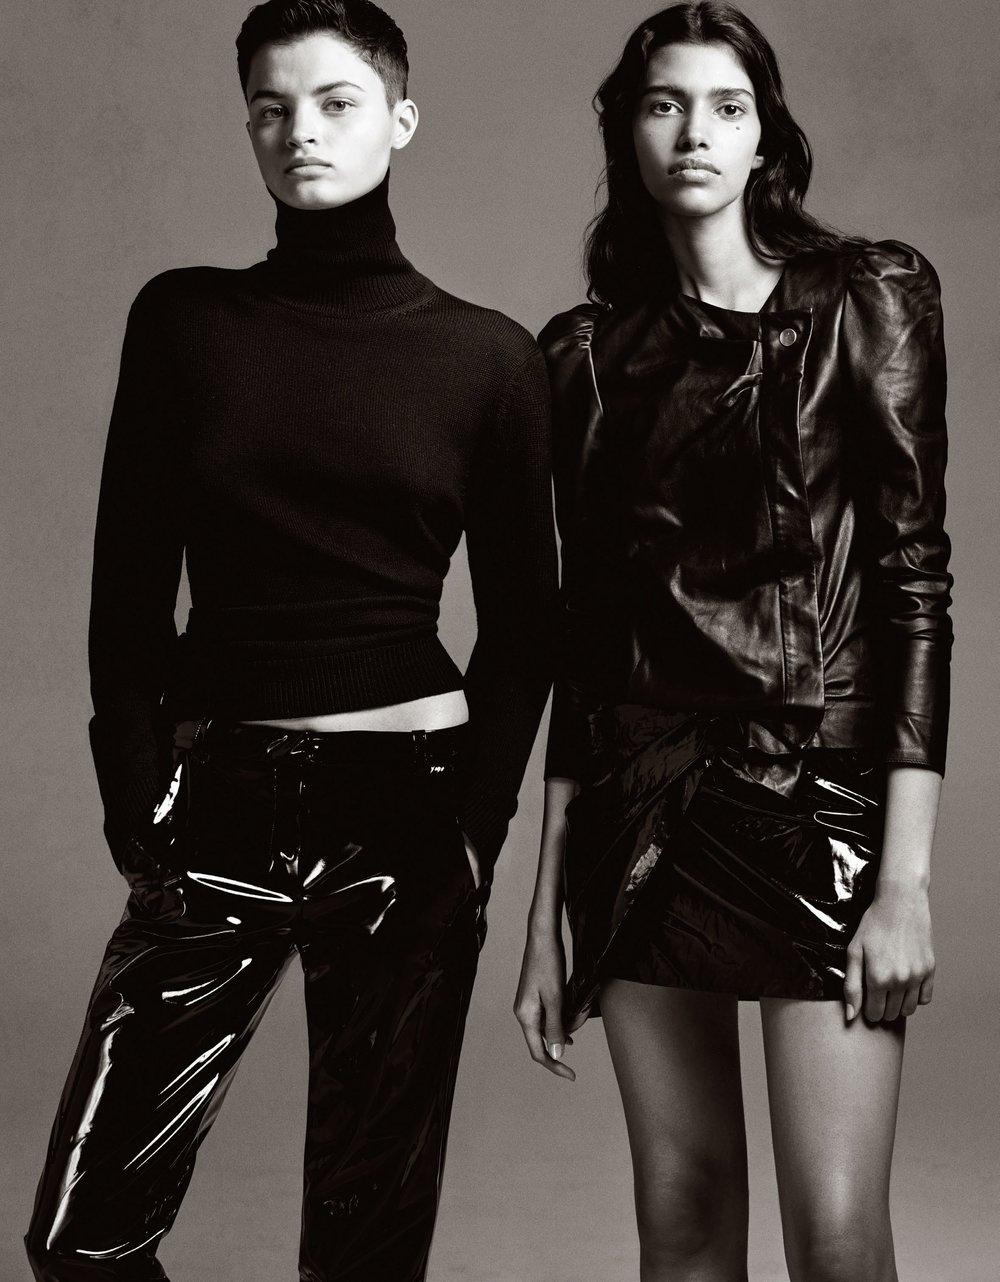 POOJA-MOR-AND-ISABELLA-EMMACK-BY-CHRISTIAN-MACDONALD-FOR-VOGUE-JAPAN-JANUARY-2017-3.jpg